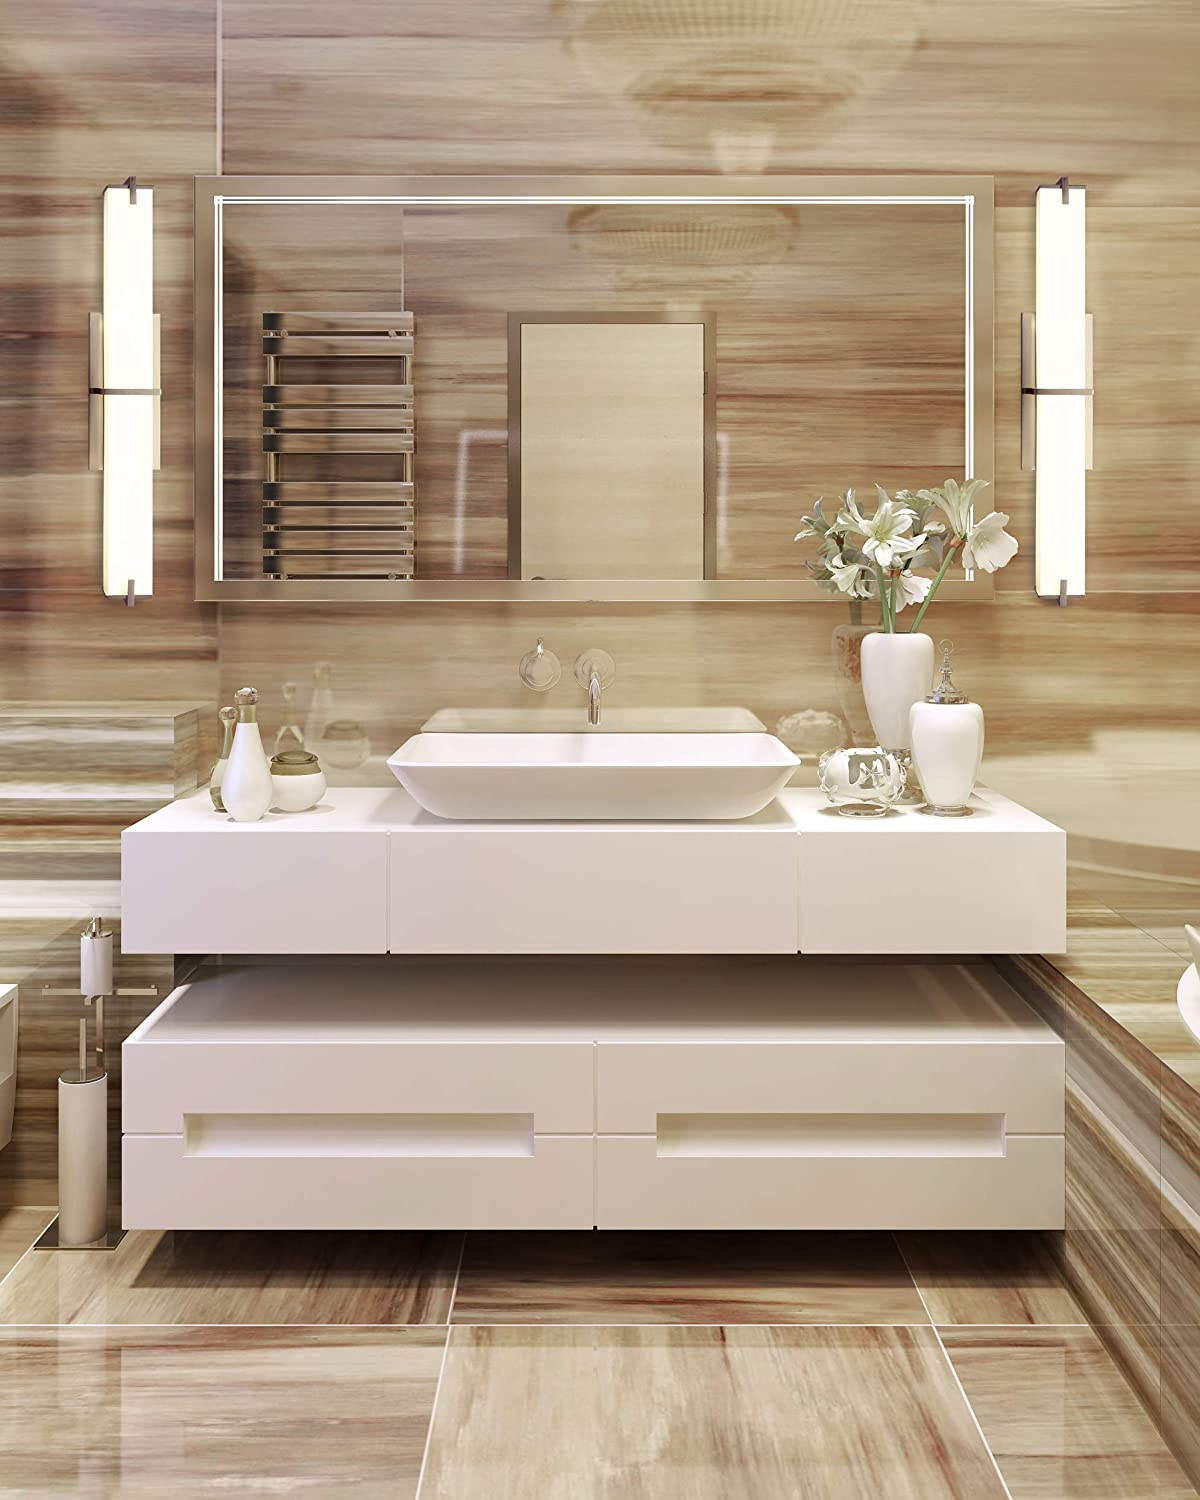 Cloudy Bay LED Bathroom Vanity Light,24 inch 4000K Cool White Bath Bar Fixture,20W 1000lm Dimmable,Brushed Nickel 41gyus82B1IL